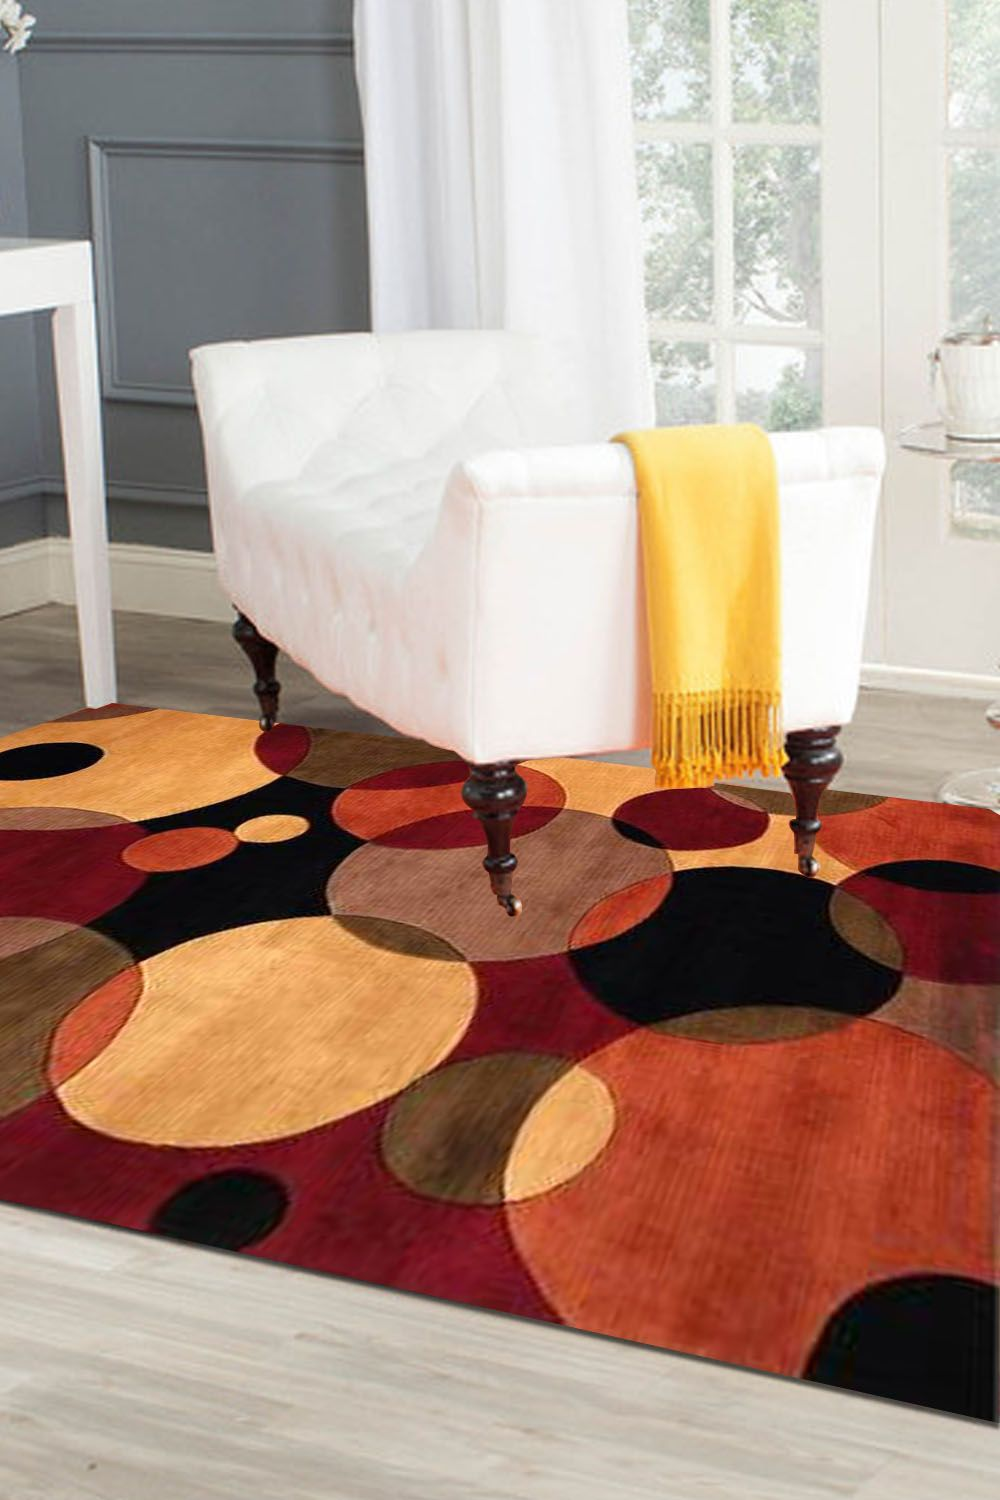 Custom Size Rug And Carpet With Eye Catchy Design Only At